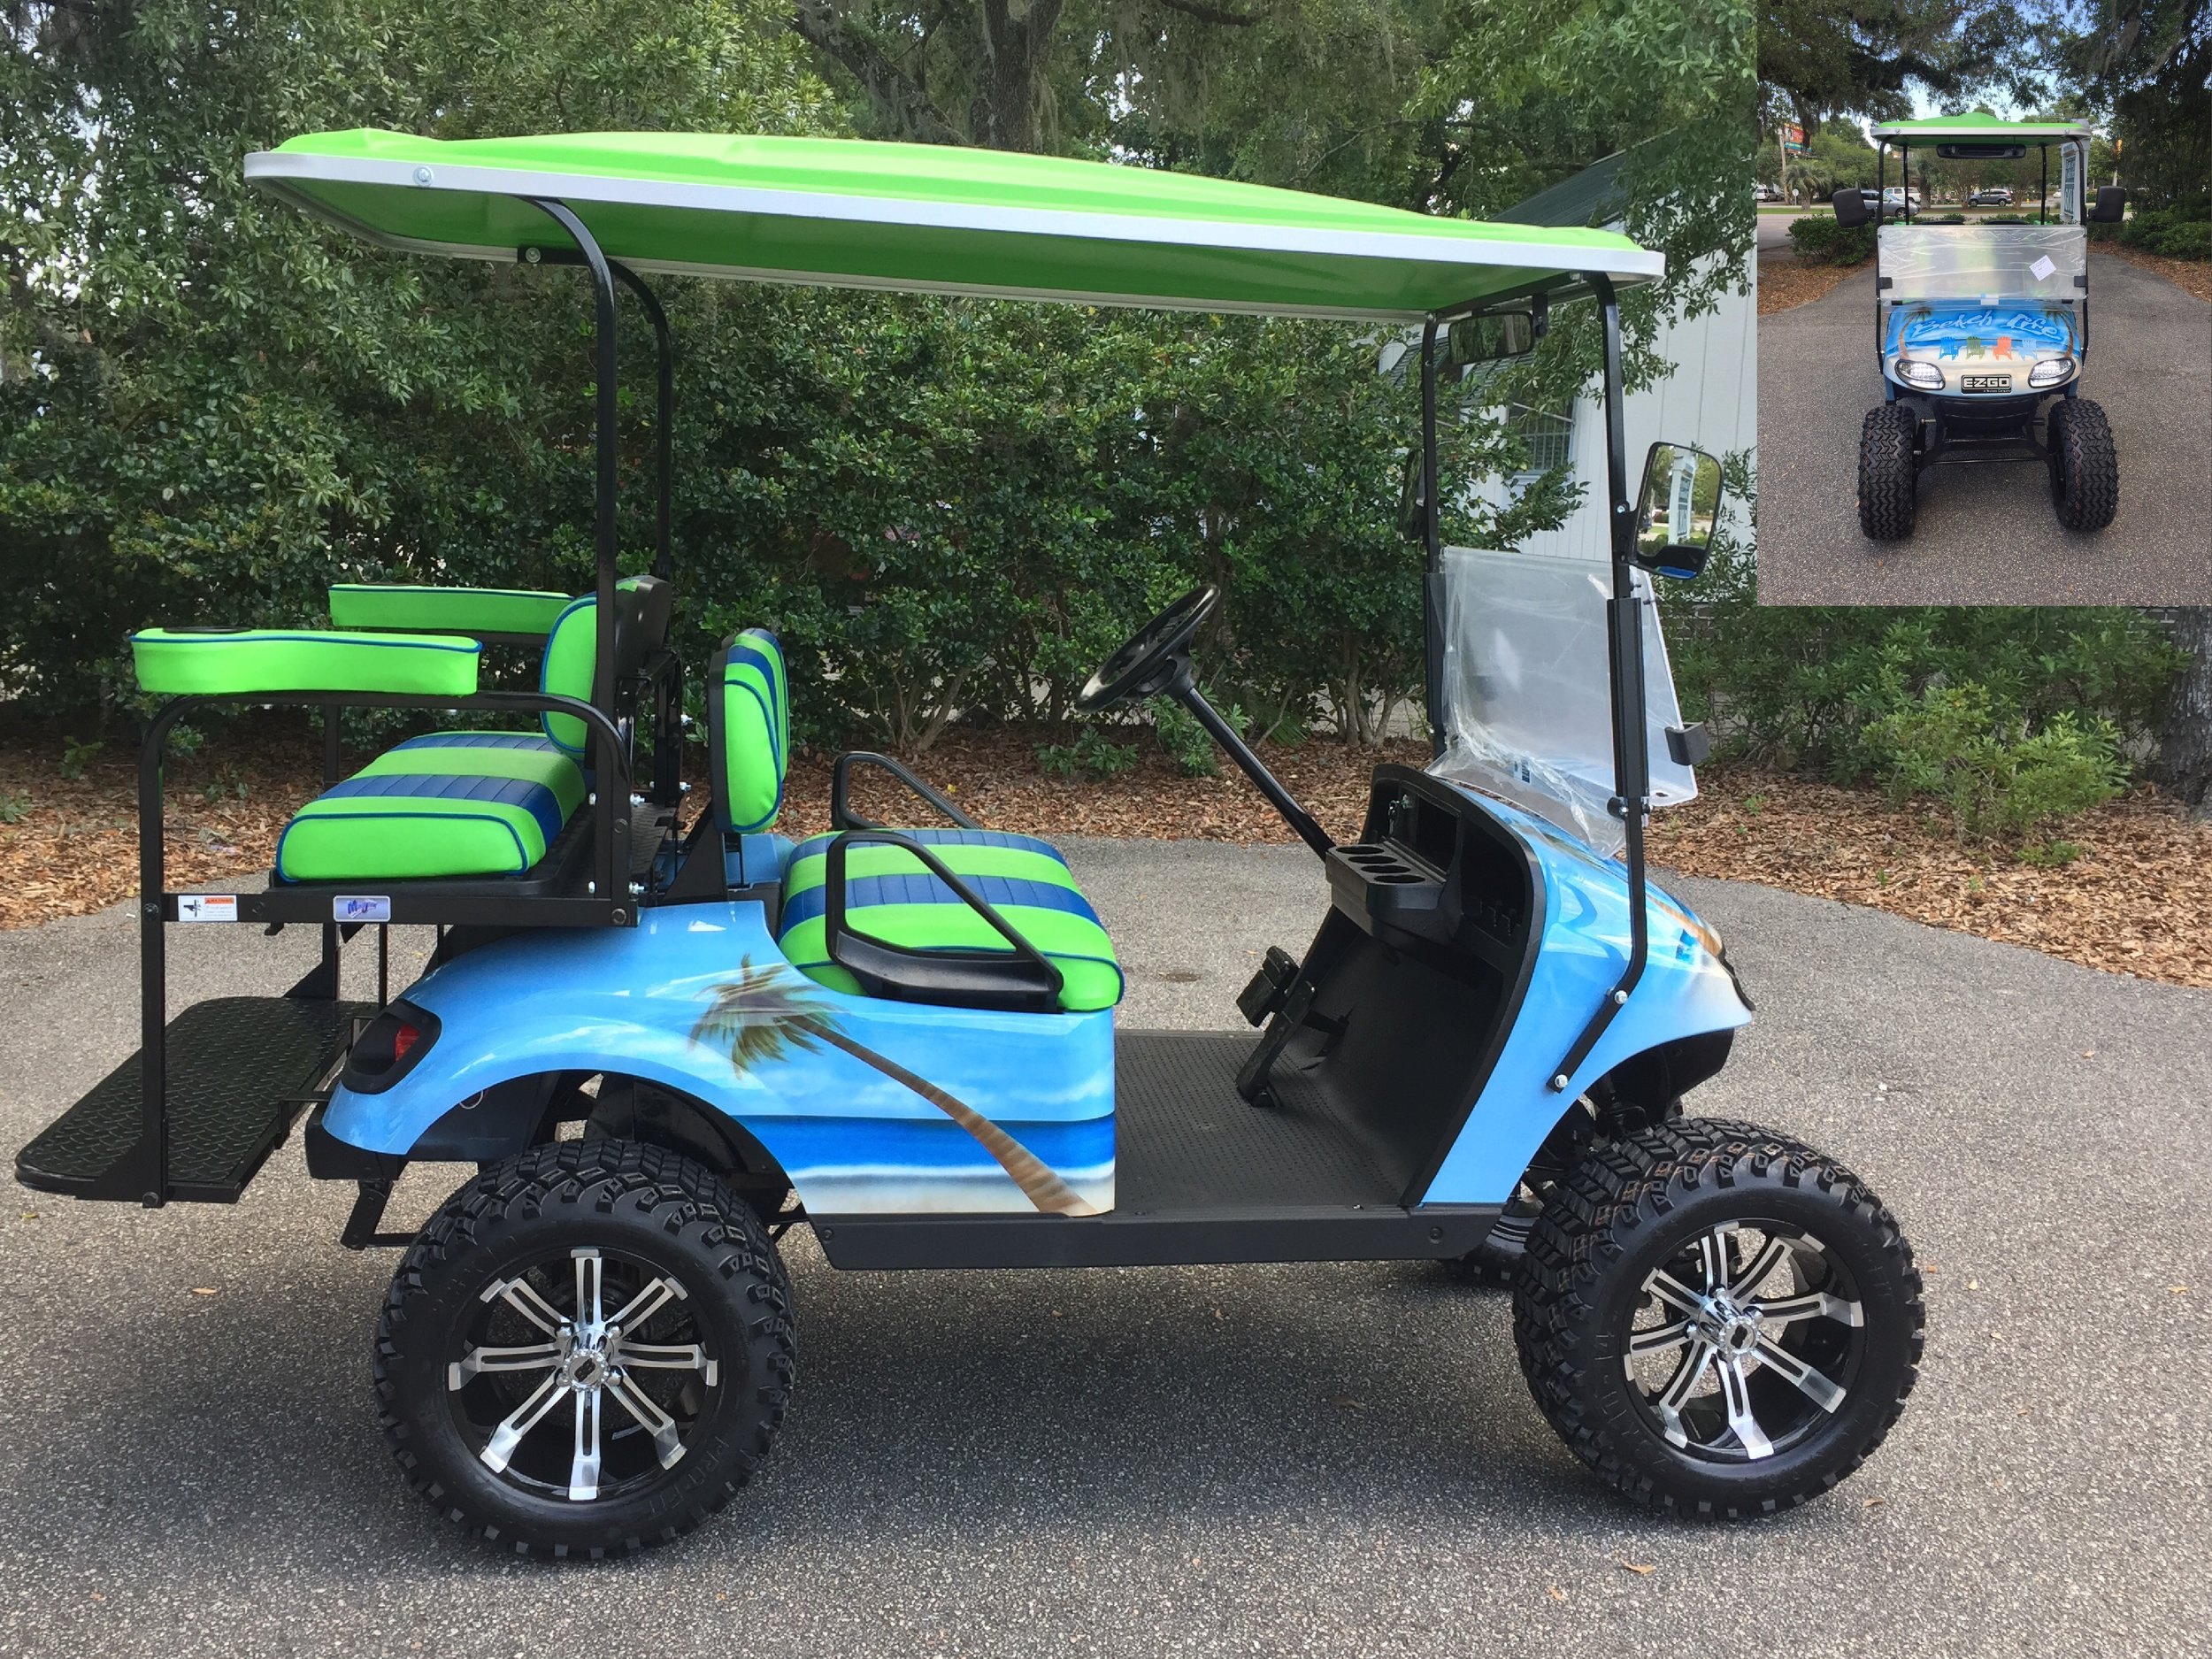 Blue Beach Life EZGO Lifted Cart  Blue/lime green seats, lime green extended top, new 2018 (6-8vt) batteries, high speed code, LED lights, Backlash (23x10x14) tires, rear cup holders, mirror & side mirrors, flip windshield, and state of charge meter